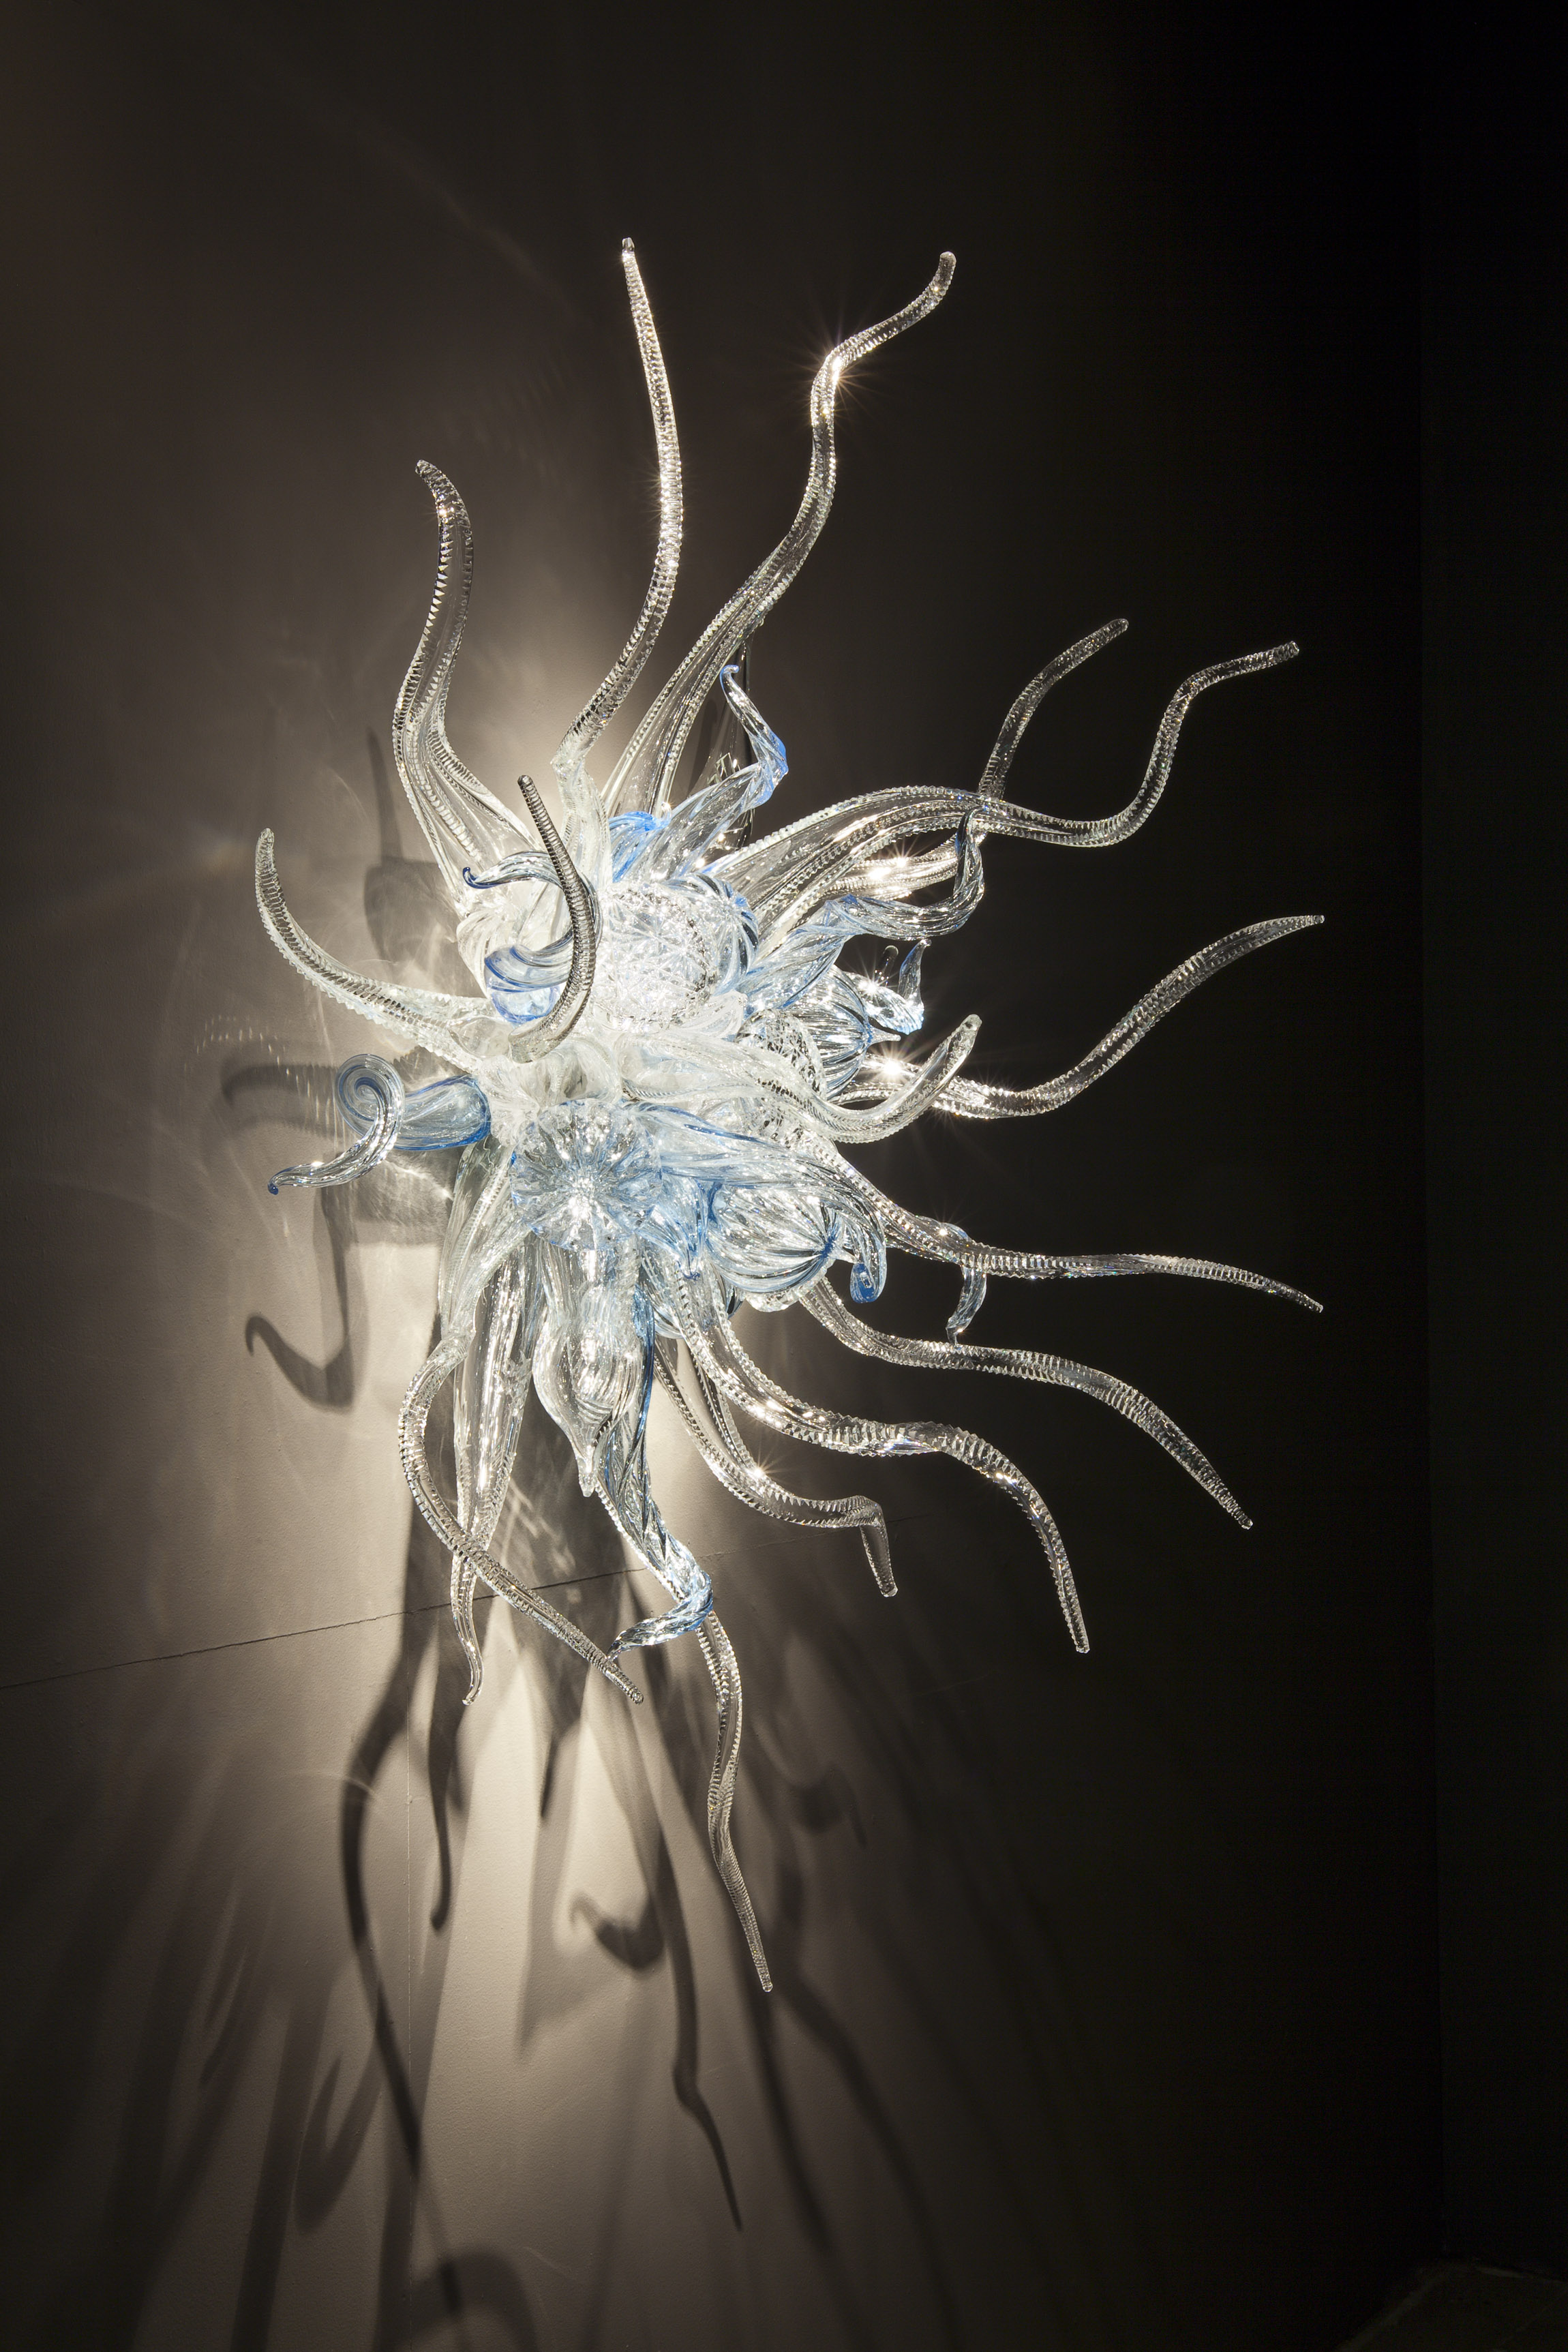 Dale Chihuly, Waterford Sconce, 2011, 155 x 153 x 69cm